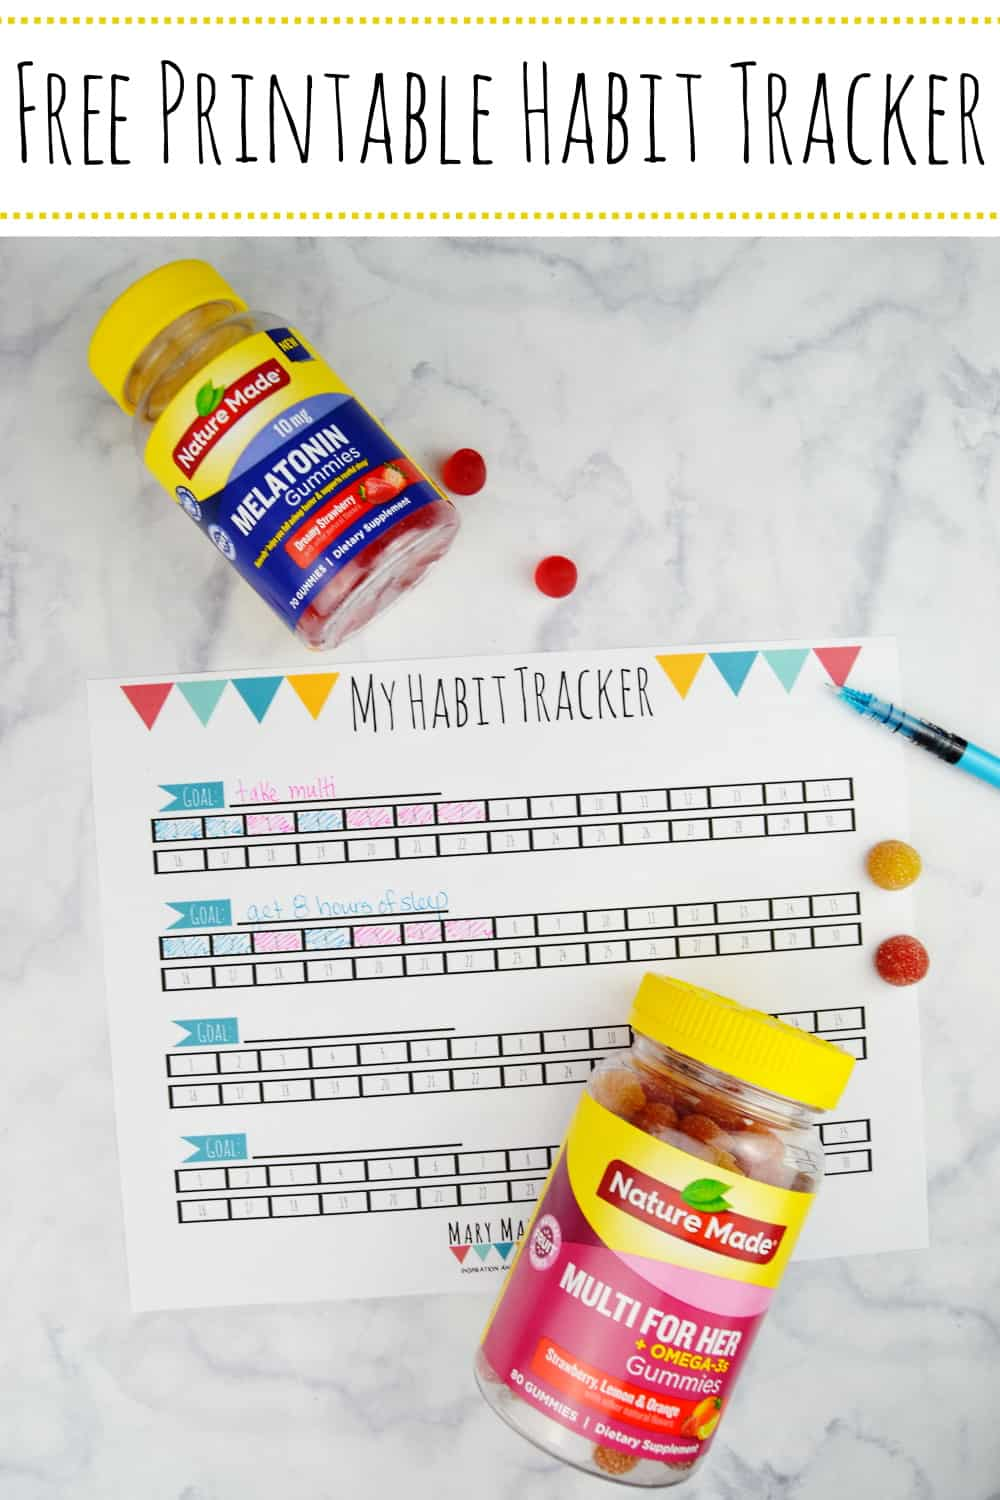 Free Printable Habit Tracker- Track your progress toward your goals 30 days at a time with this habit tracker sheet. #freeprintablehabittracker #habitracker #goaltracker